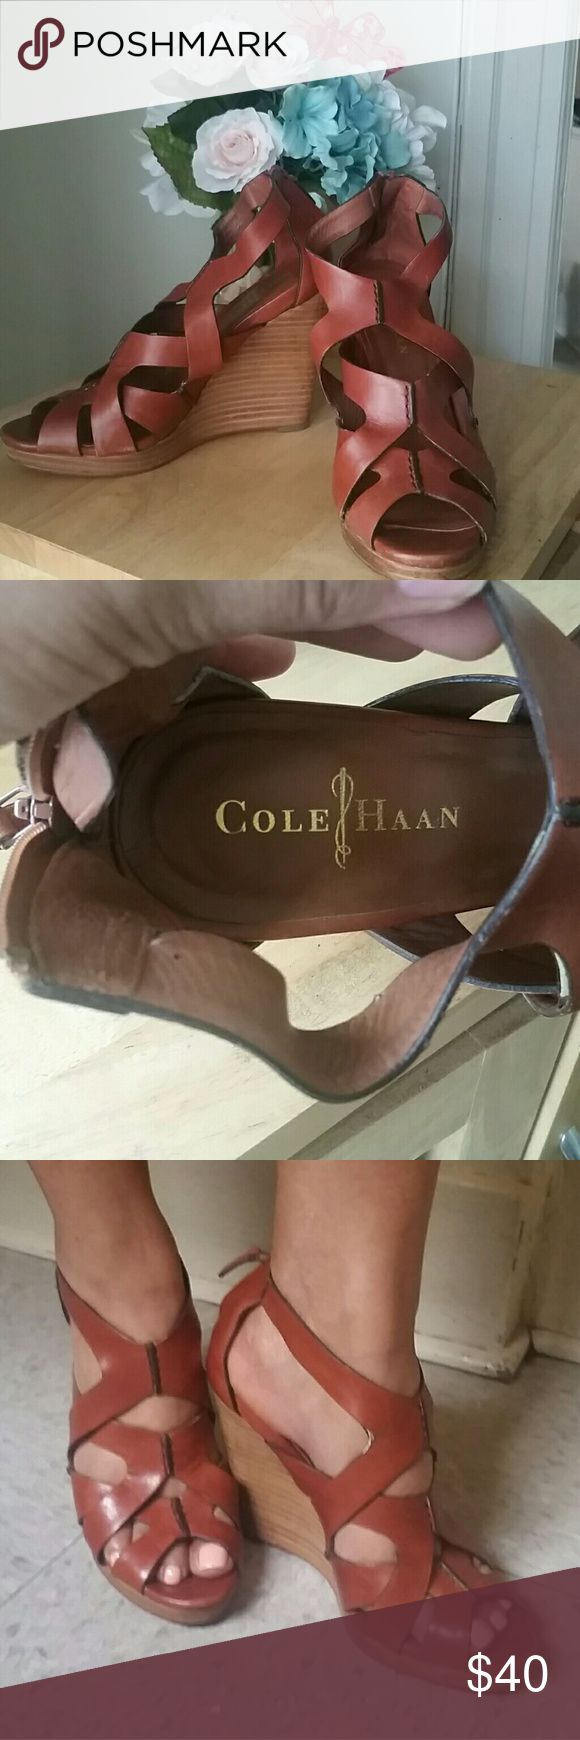 Cole Haan wedges Summer is around the corner and these cute shoes will make your outfits so much more fun!!!  Right shoe is a little scuffed, see last pic. Cole Haan Shoes Wedges